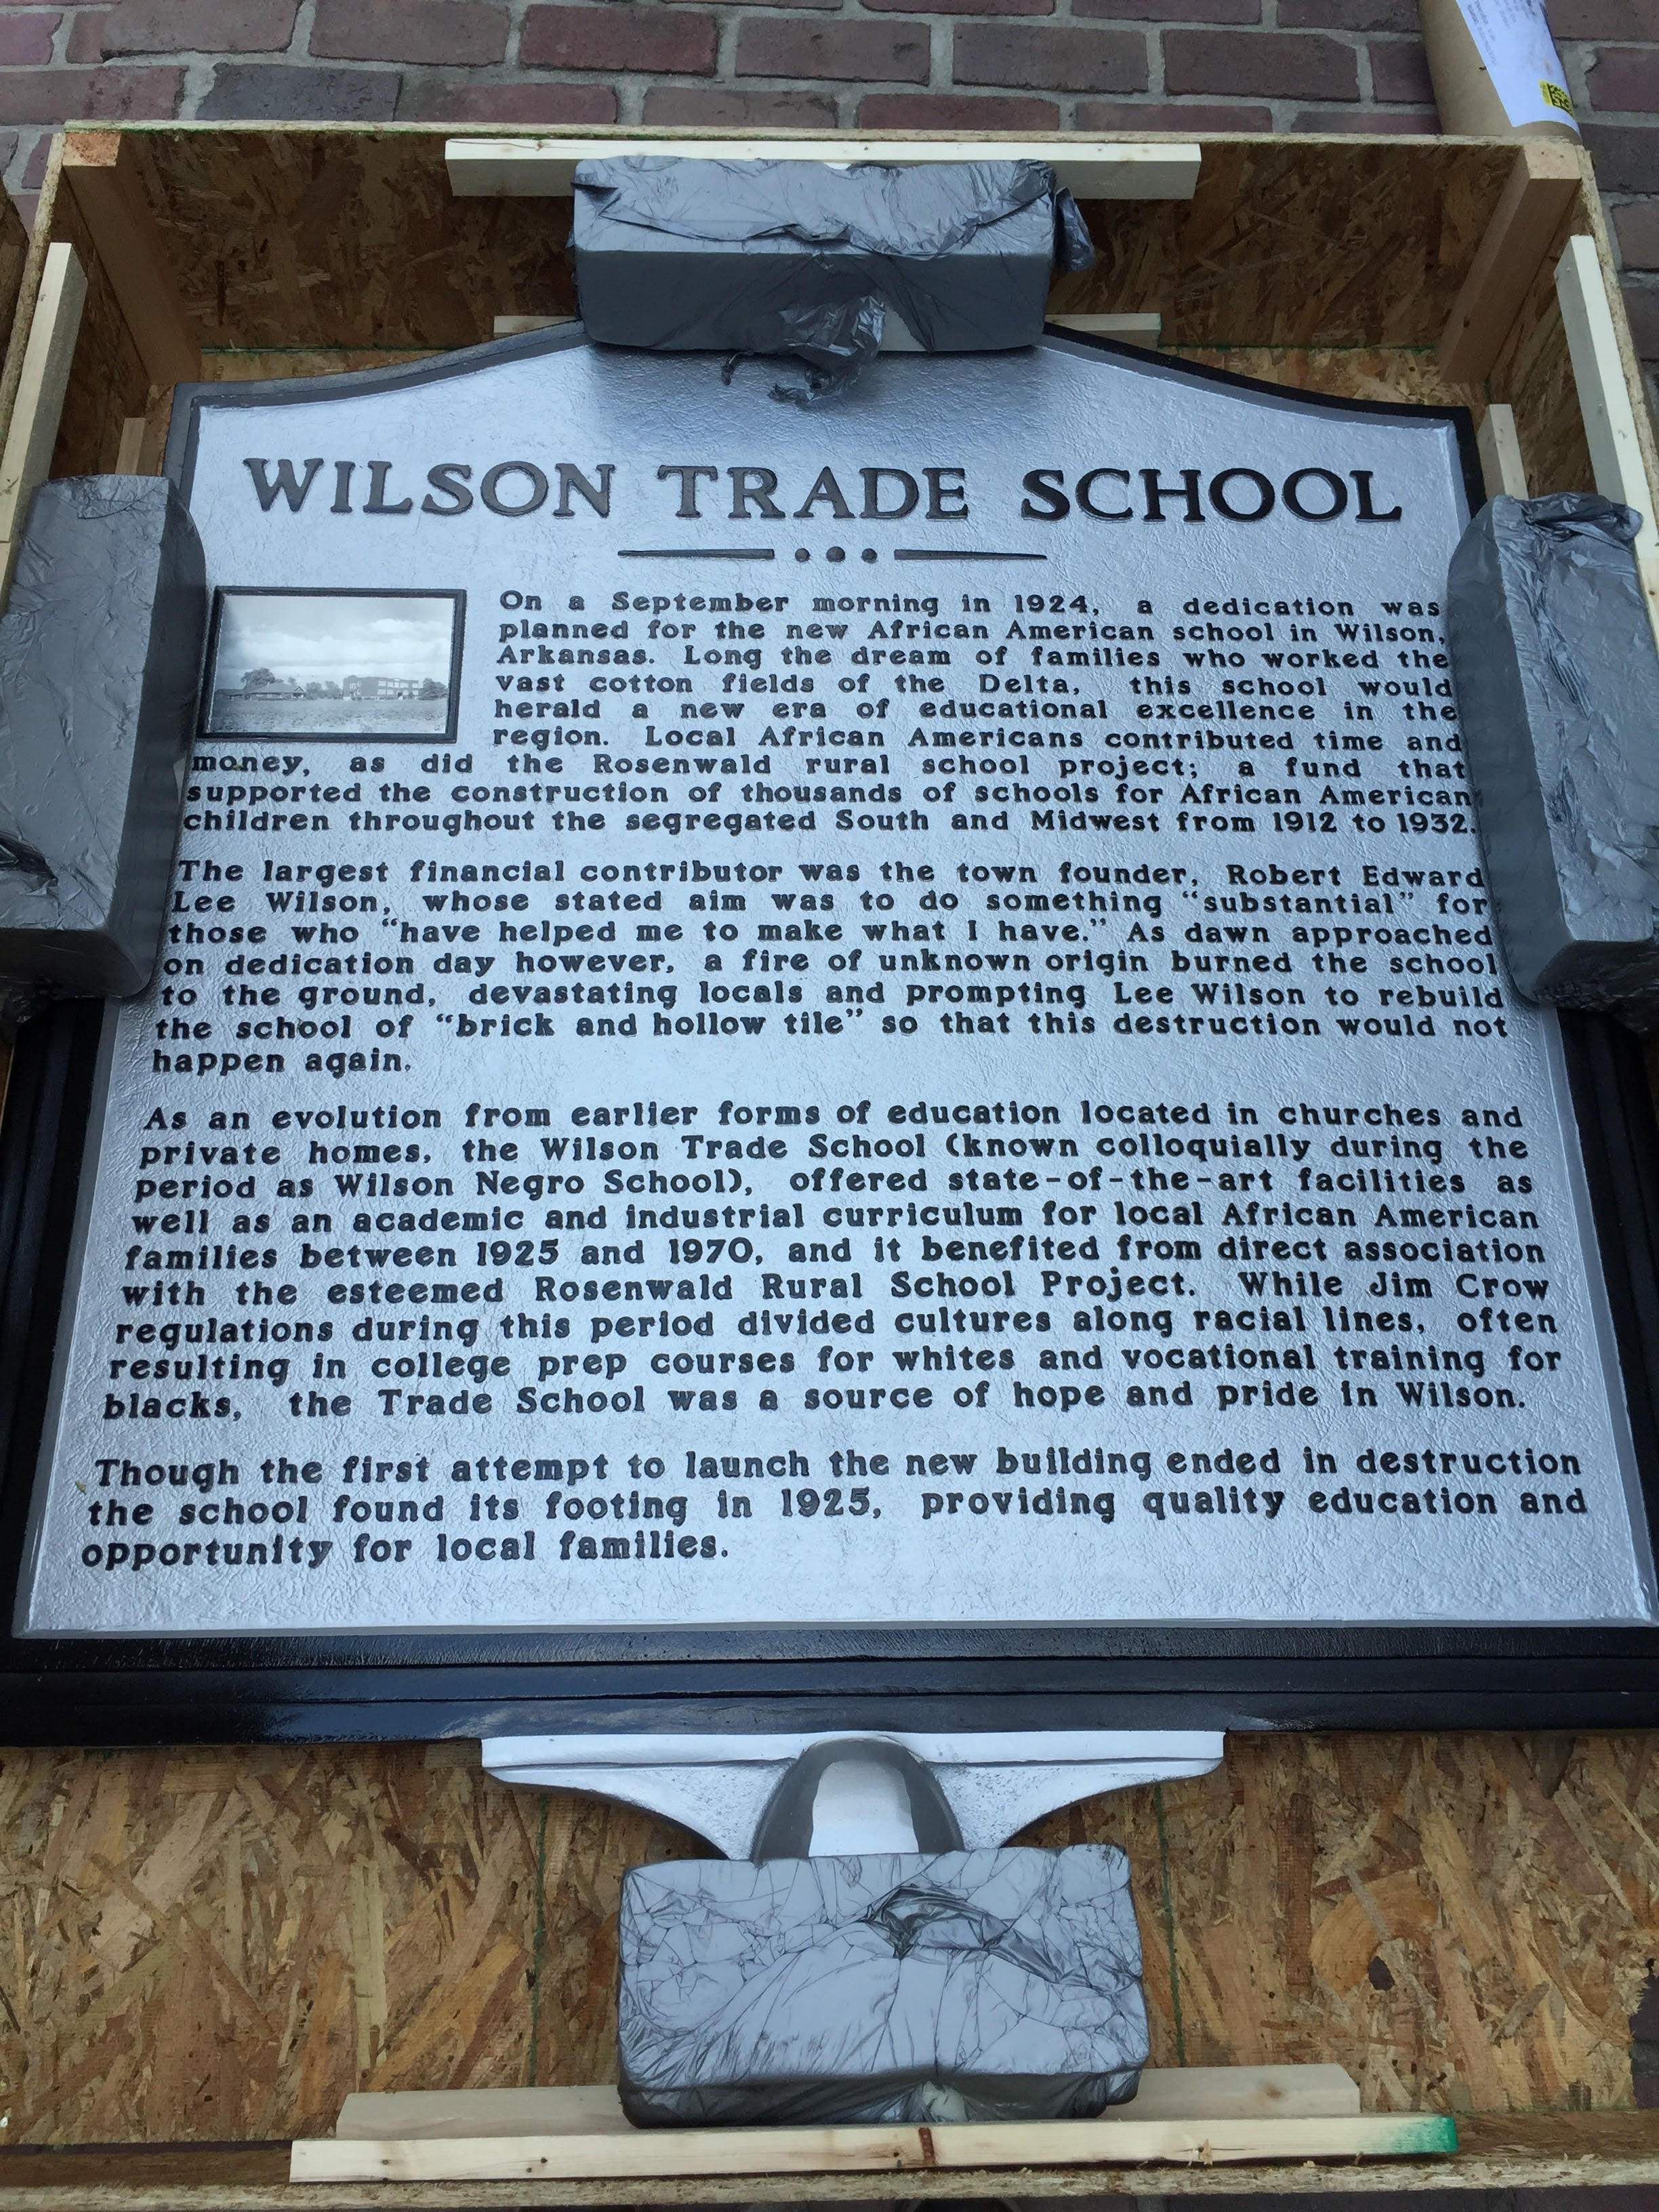 Wilson Trade School - As part of my work as Director of Communications and Brand Strategy on the revitalization project in Wilson, Arkansas, it was necessary to broaden the public historical narrative of this unique town and surrounding landscape. From 1925 to 1970, this school served as the formal educational opportunity for African American children in Wilson. Funds for the school were raised in 1924/25 by the local African American community, R.E.L Wilson - the town founder, and from the Rosenwald Rural School Project - a fund created by Julius Rosenwald and Booker T. Washington that supported the construction of thousands of schools for African American children throughout the segregated South and Midwest from 1912 to 1932. I worked with the The Wilson Trade Alumni Association, local leadership, and the Wilson Trade Community Center Advisory Committee to re-envision this cultural landscape and produce a historical marker at the site. At the time, only the concrete foundation outline of the original school building remained within a larger spatial context that includes the Wilson Bicentennial Memorial, a ball field, and a Gym Building that was used for community events until falling into disrepair in recent years. This project created an opportunity to publicly commemorate and interpret the important Trade School history, and it initiated a local conversation about transforming the Gym structure into a multipurpose space that will help to bridge all communities in Wilson.